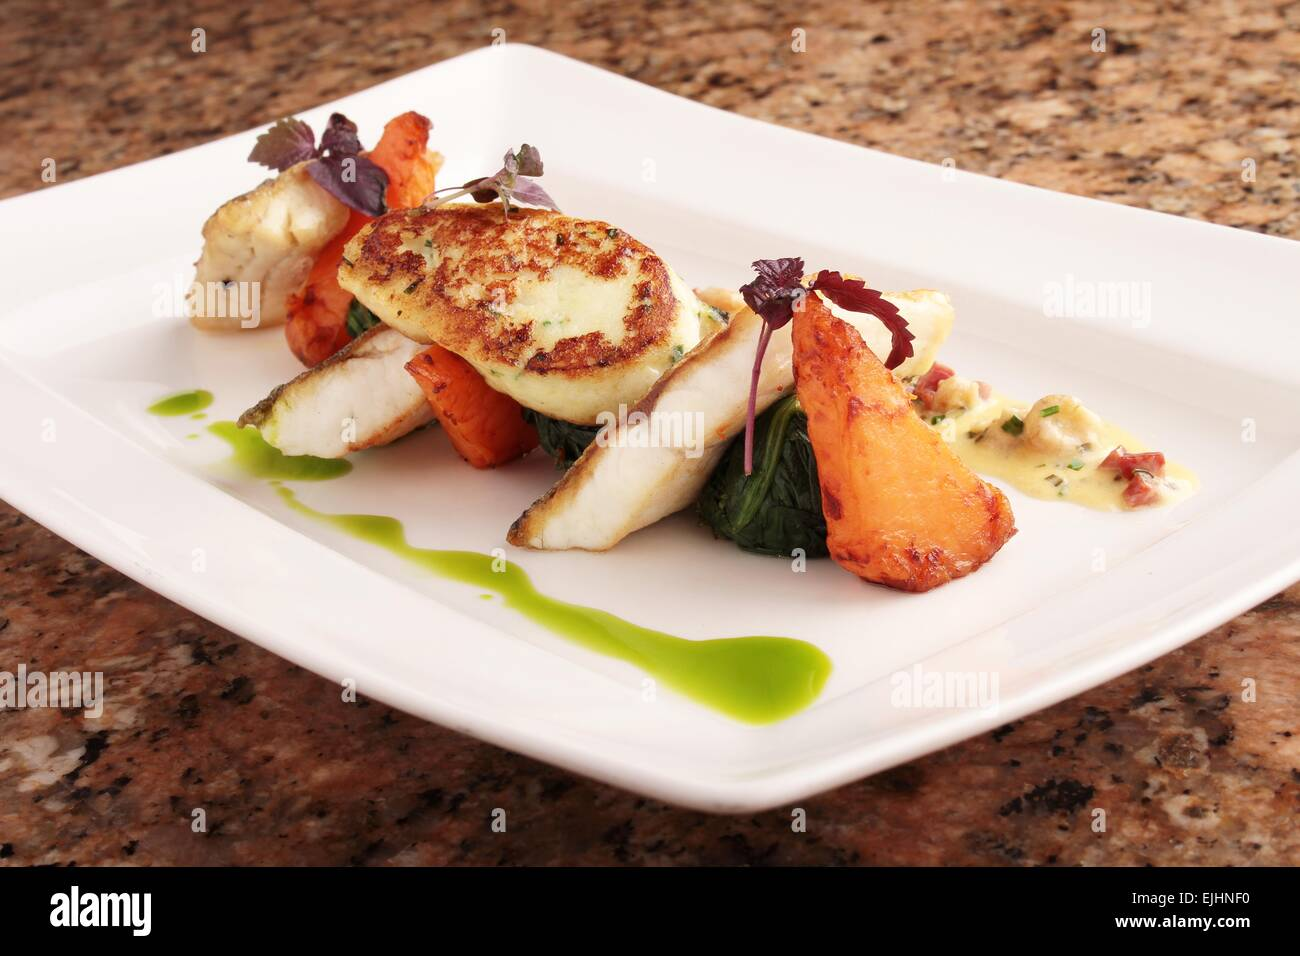 pan fried sea bass plated dinner meal & pan fried sea bass plated dinner meal Stock Photo: 80295348 - Alamy